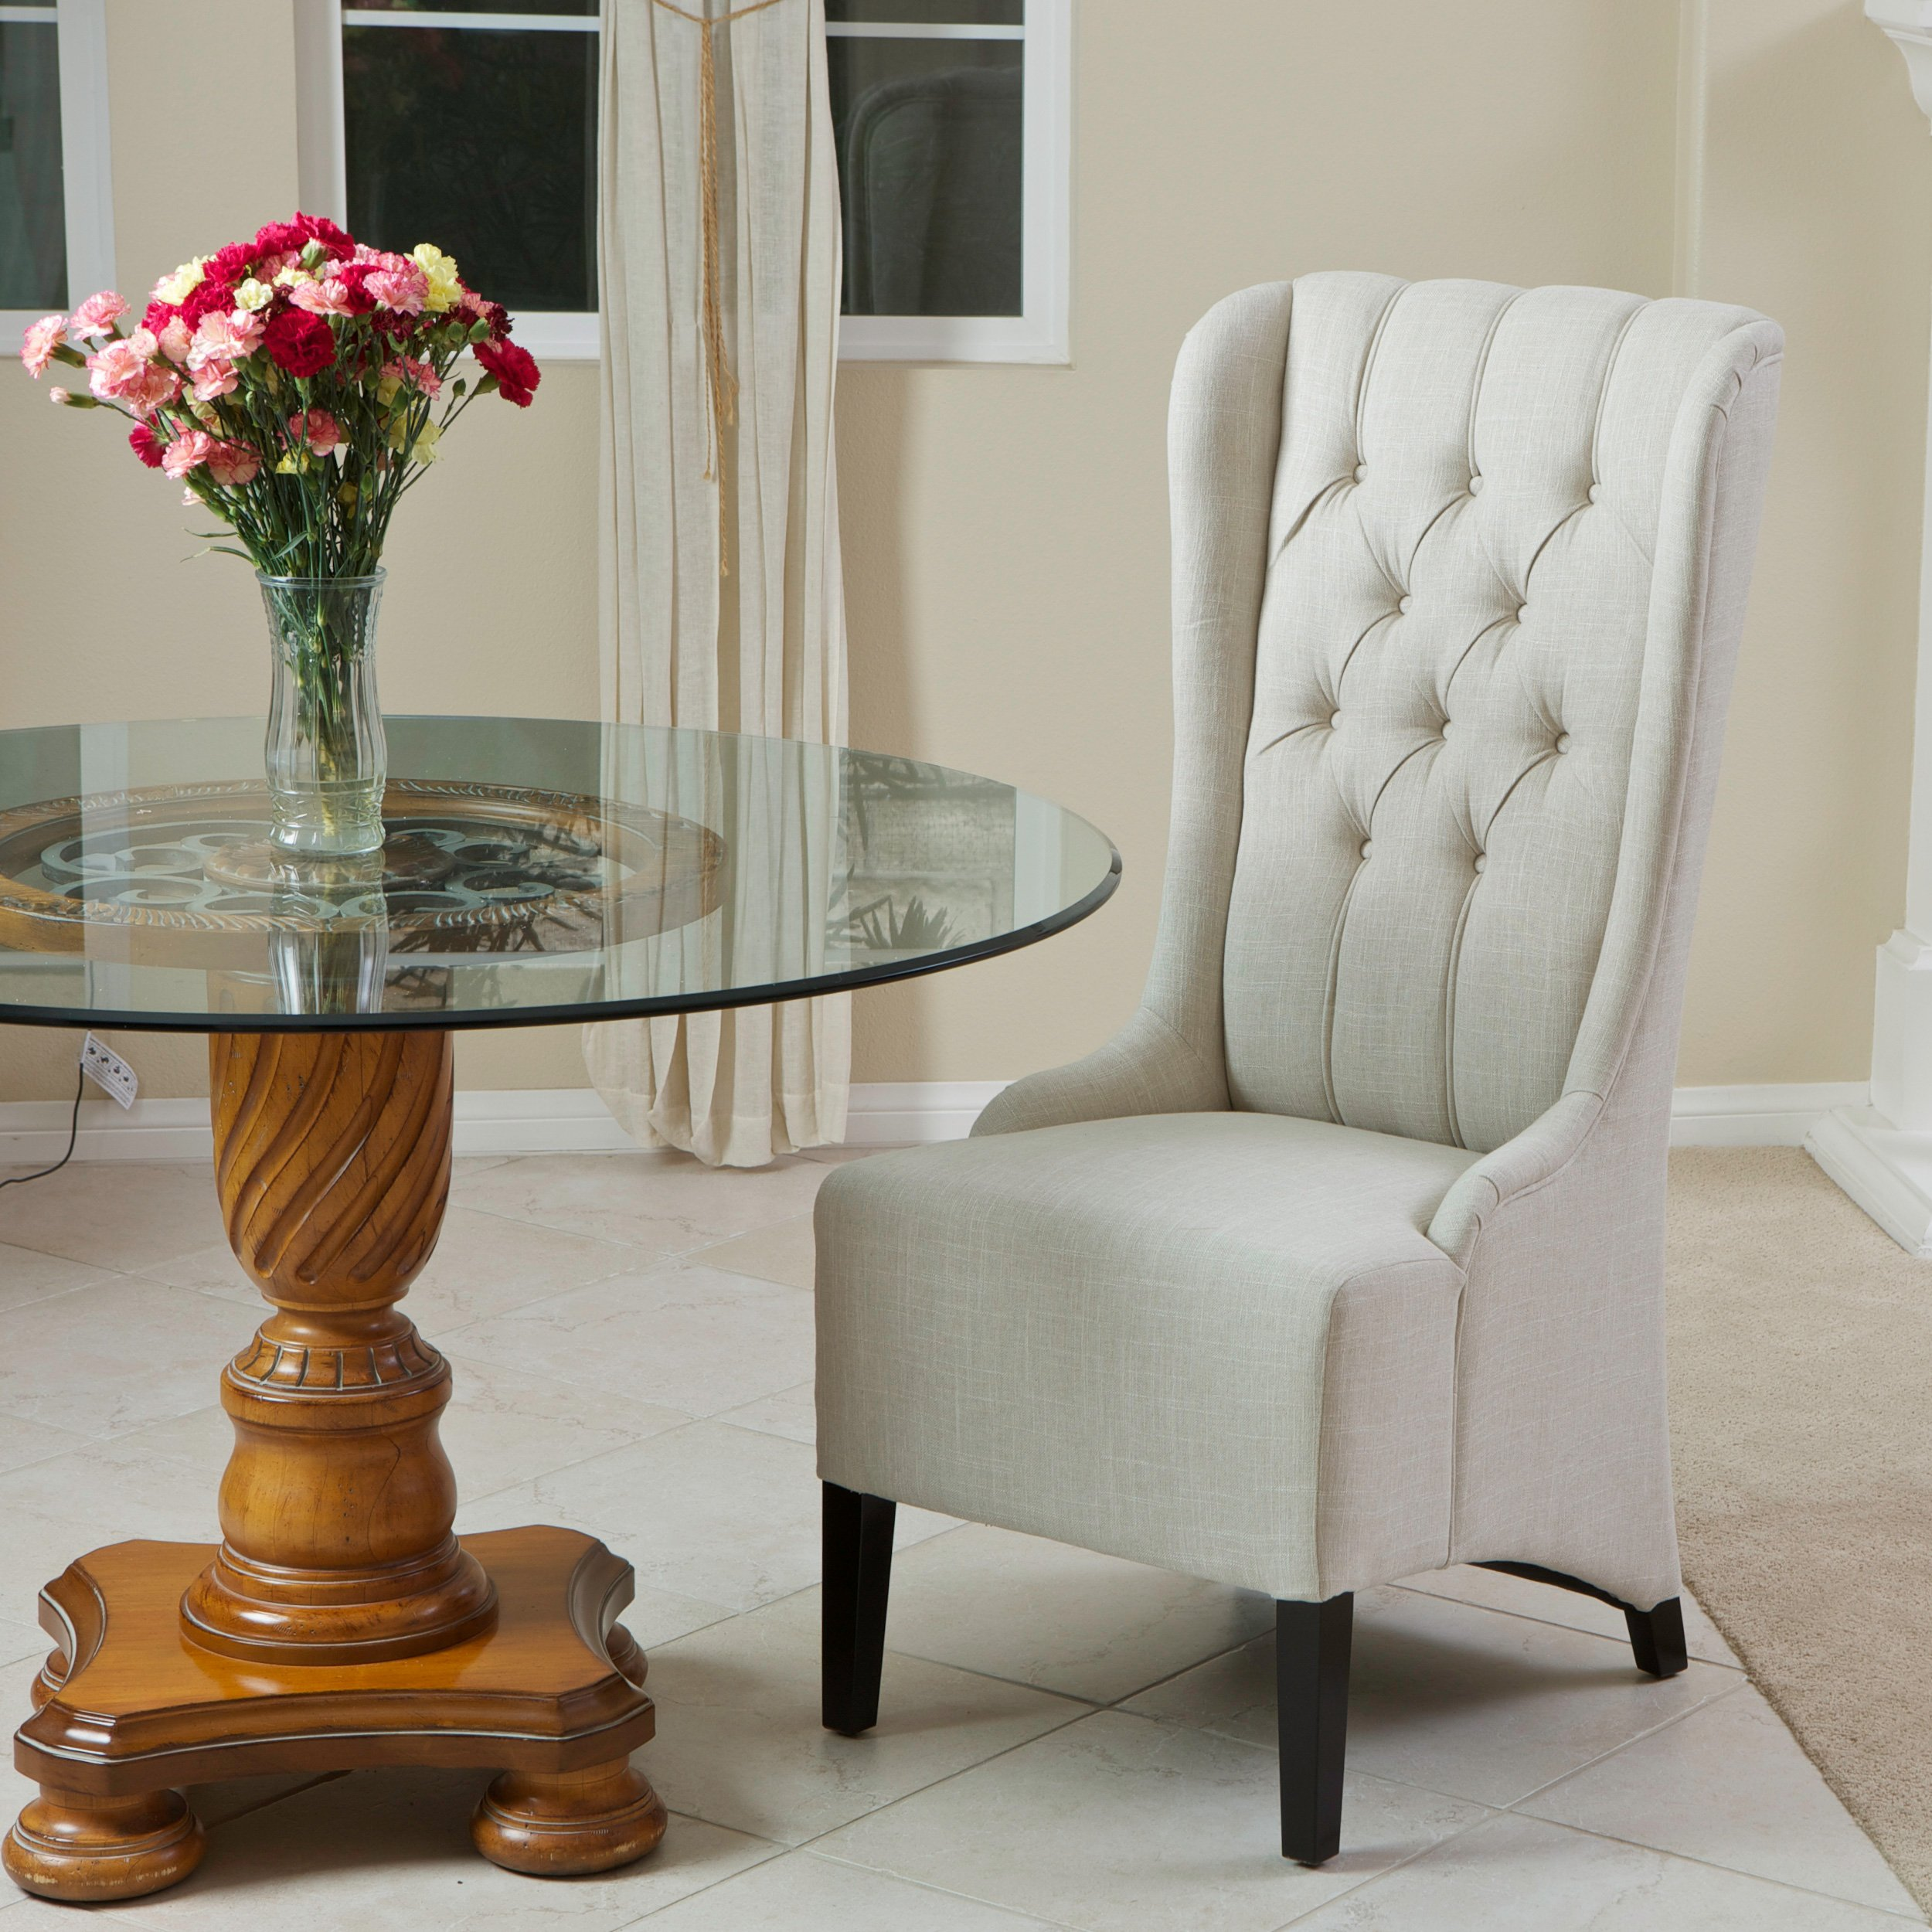 Christopher Knight Home 235110 Champion Tufted Light Beige Fabric Dining Chair